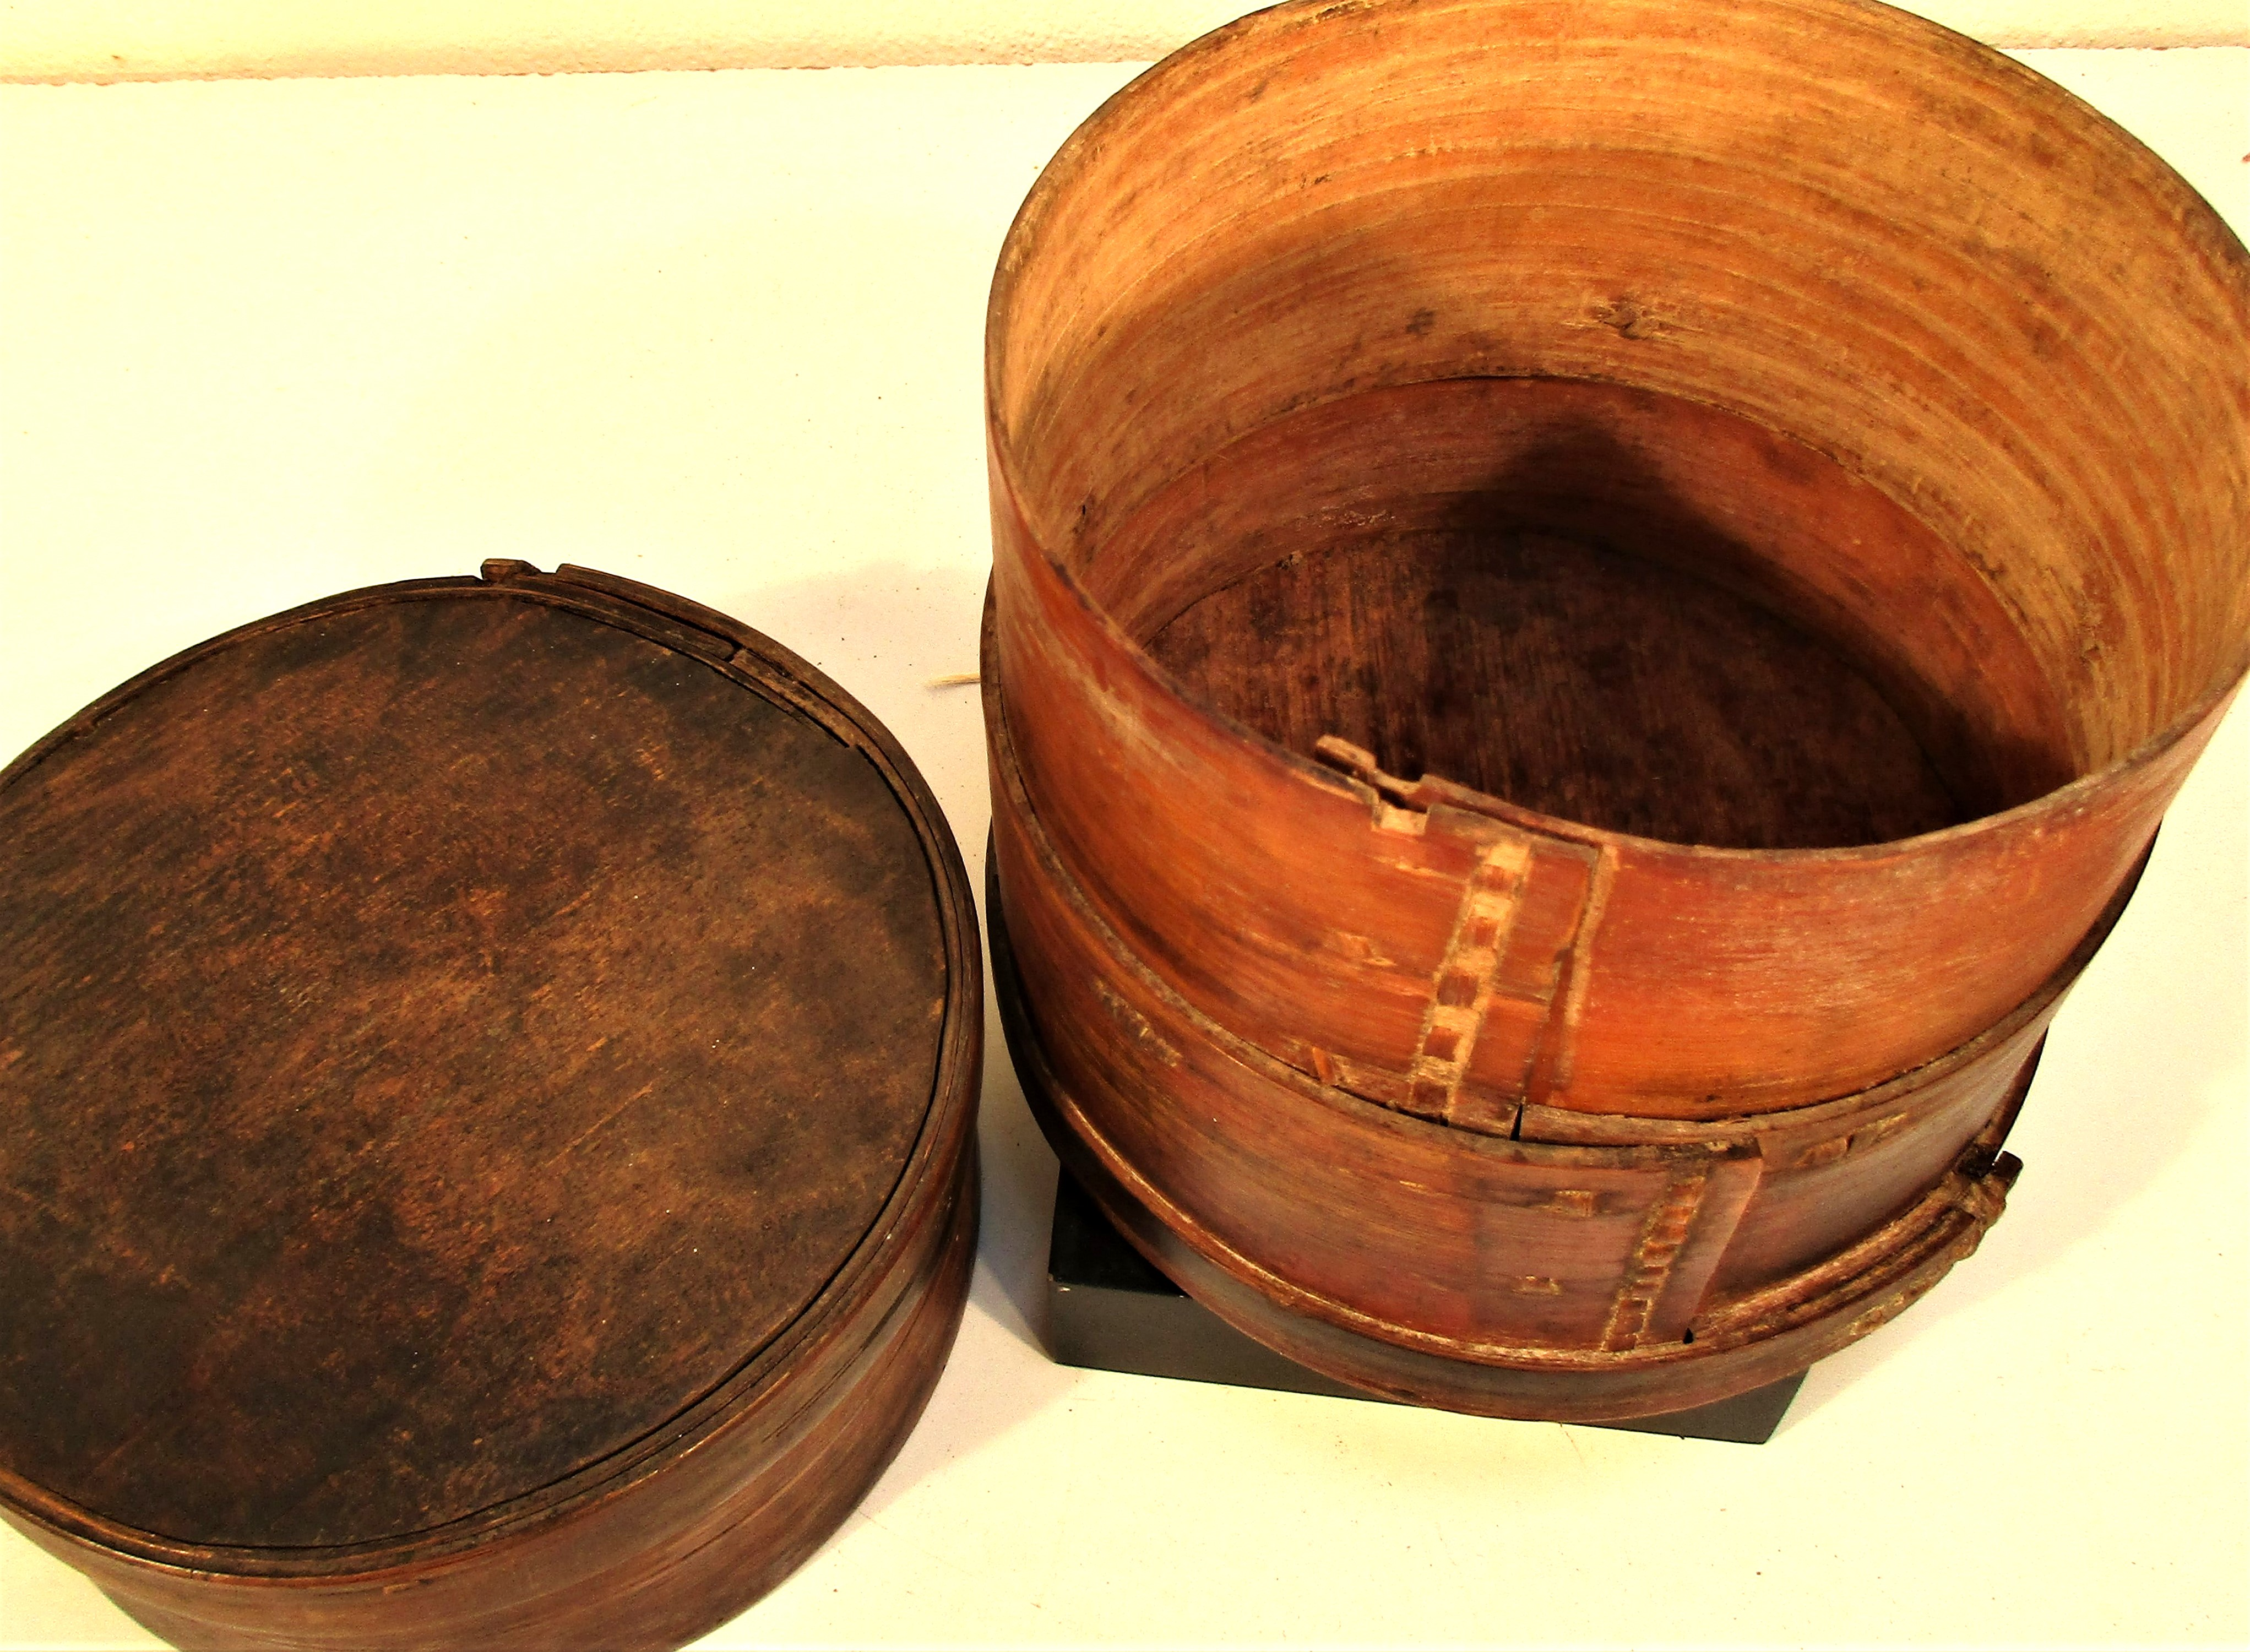 Bamboo rice container from China. 16 x 16cm. Late 20th c. - Image 3 of 3